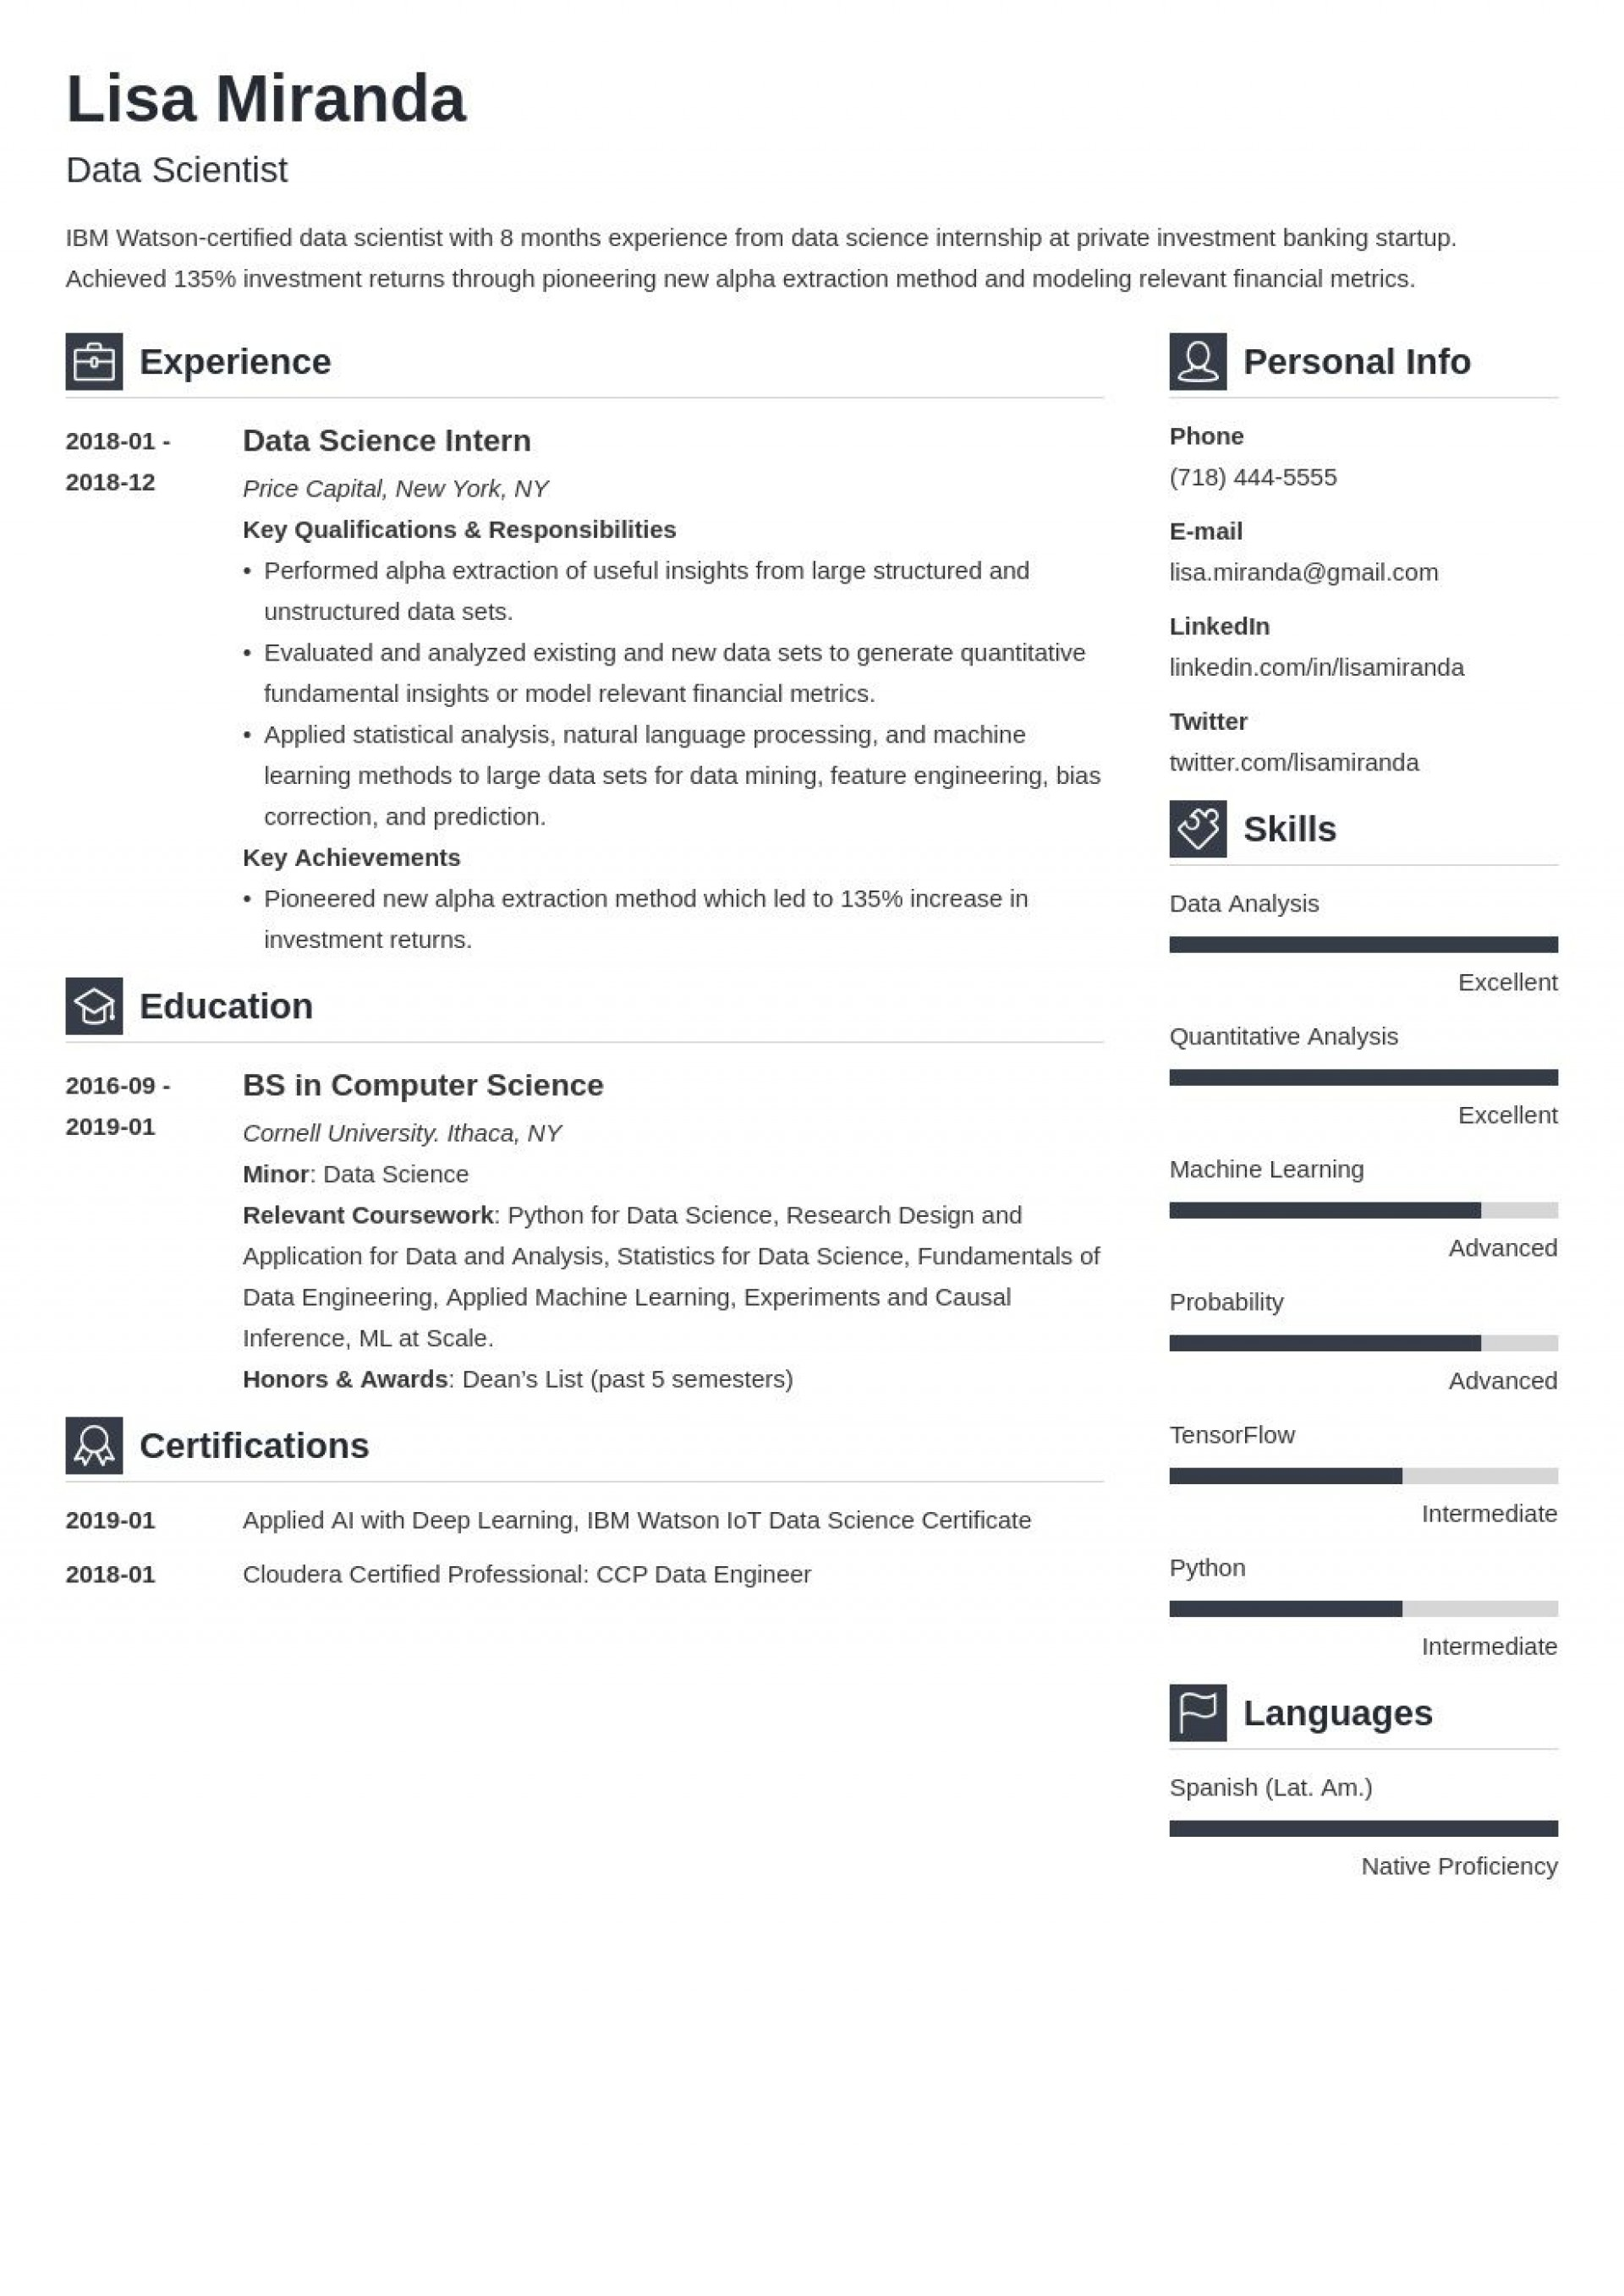 008 Awesome Recent College Graduate Resume Template Highest Clarity  Word1920